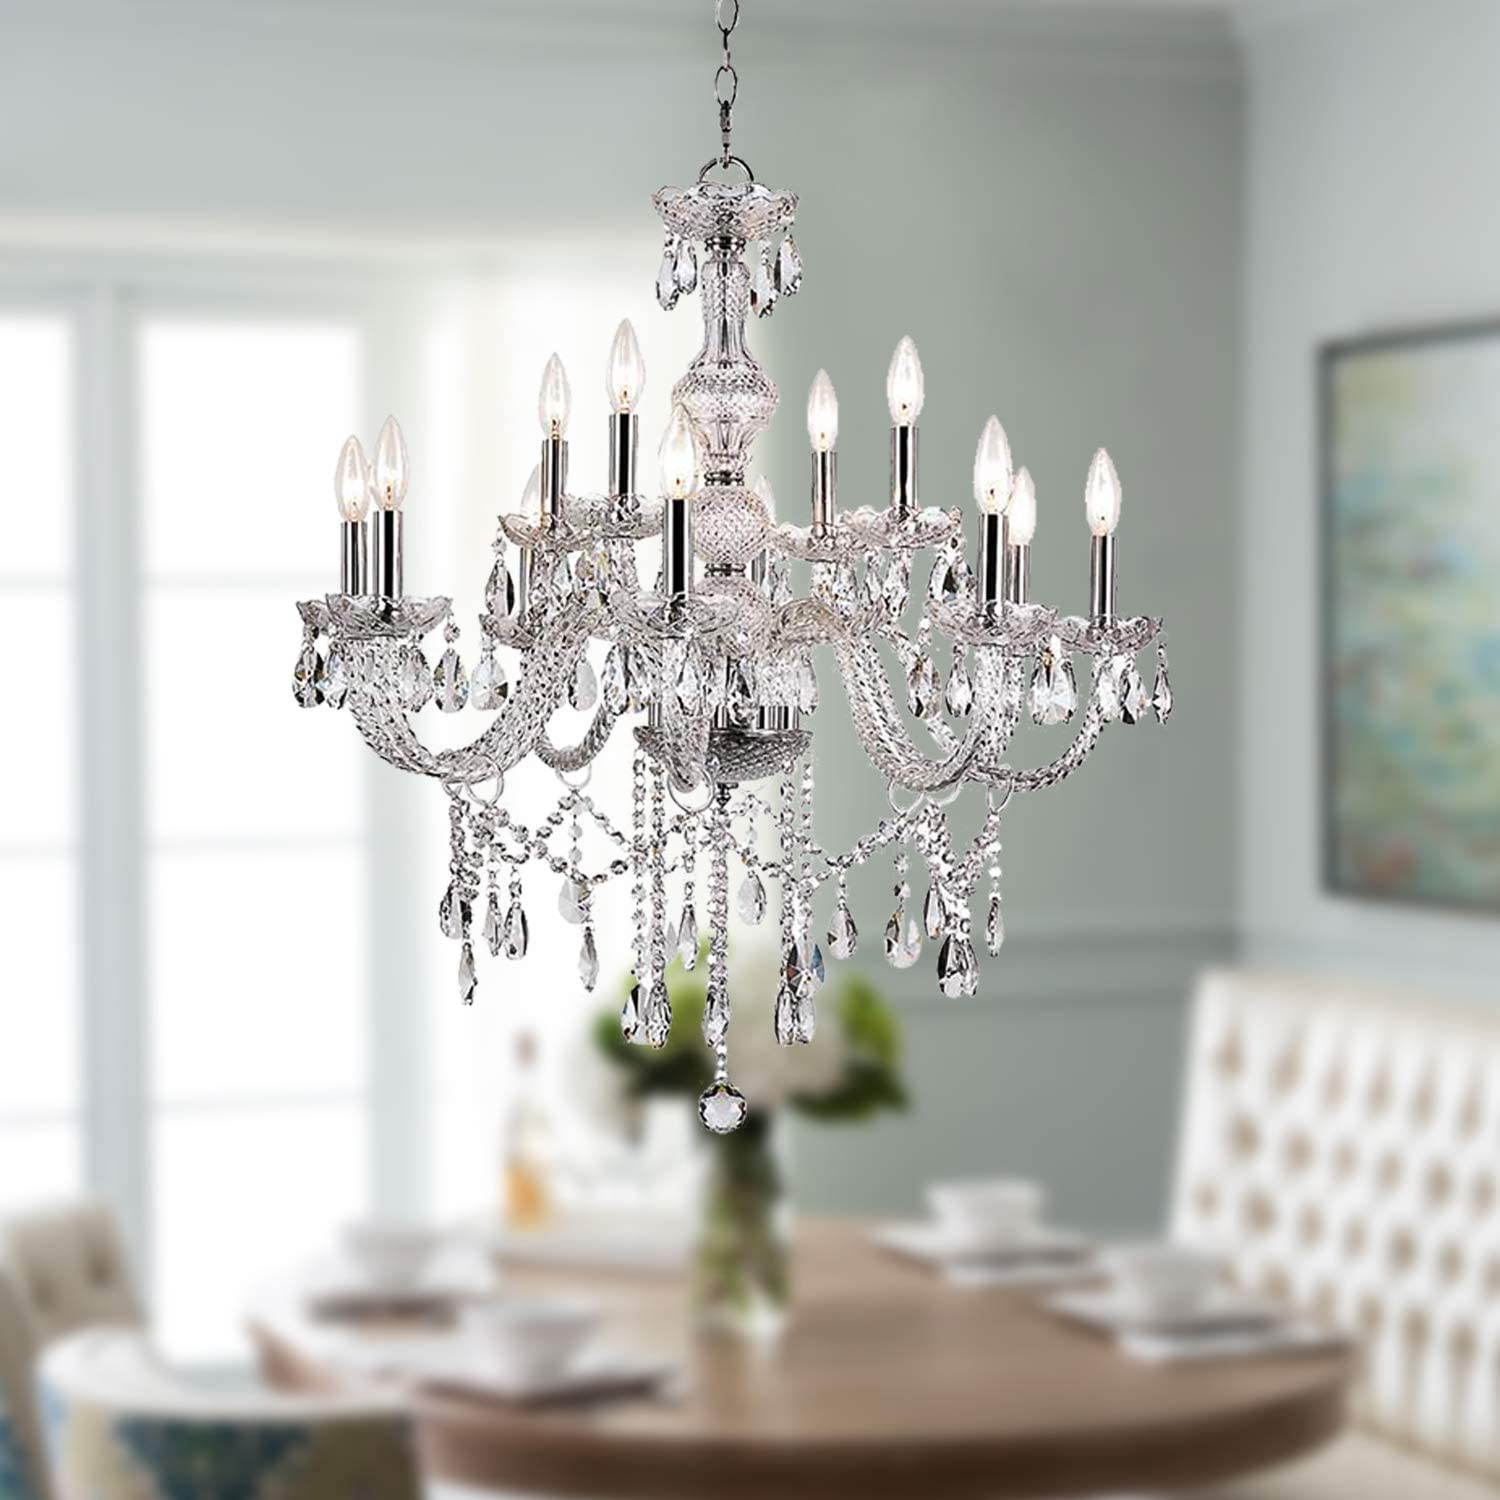 Saint Mossi Modern K9 Crystal Chandelier Lighting LED Ceiling Light Fixture Pendant Chandelier for Livingroom 12 E12 Bulbs Required Width 31 inch x Height 32 inch